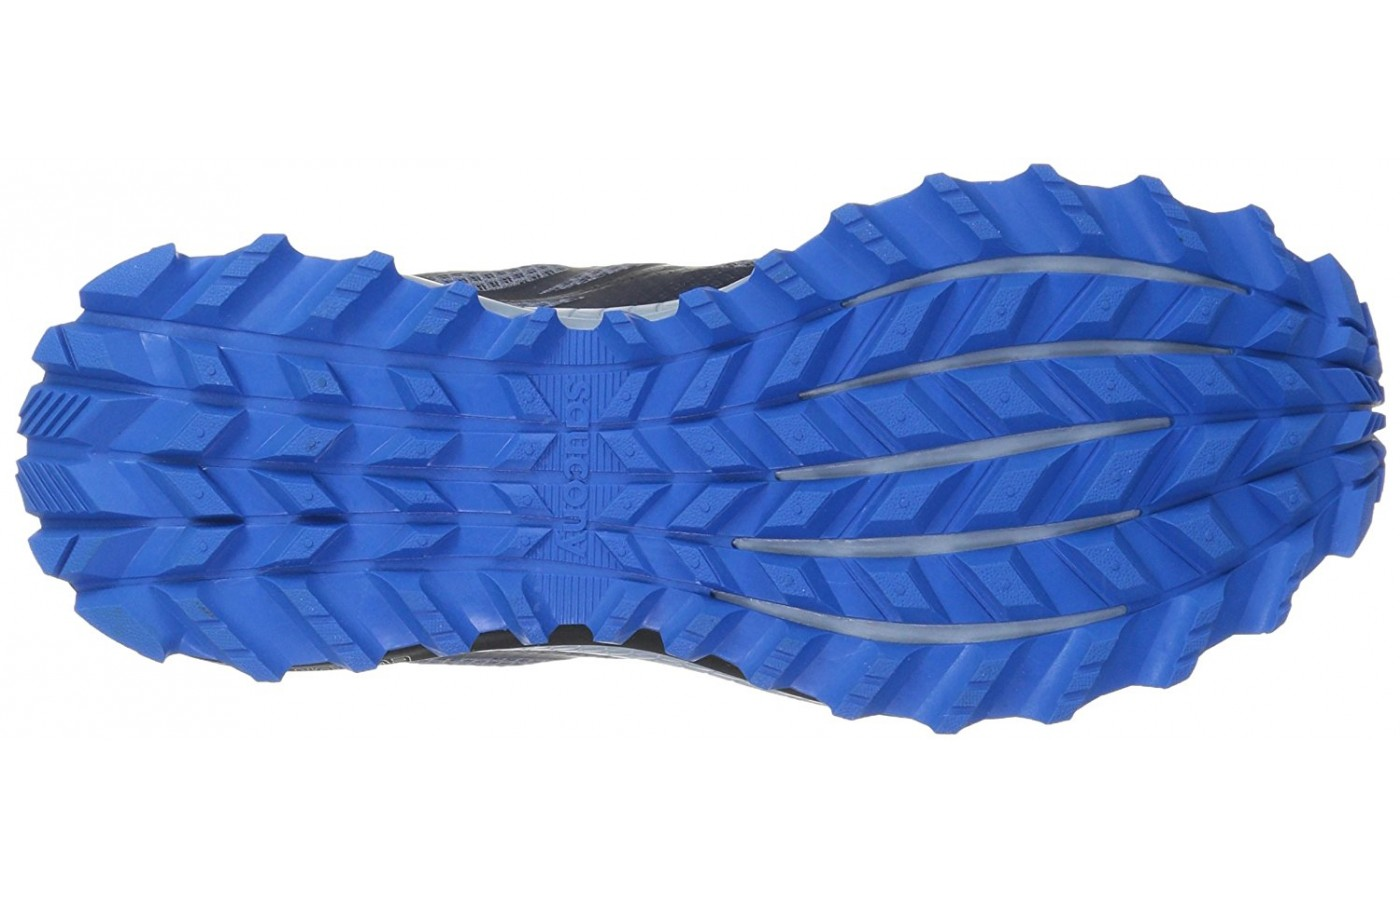 The Saucony Peregrine 8 has a PWRTRAC outsole